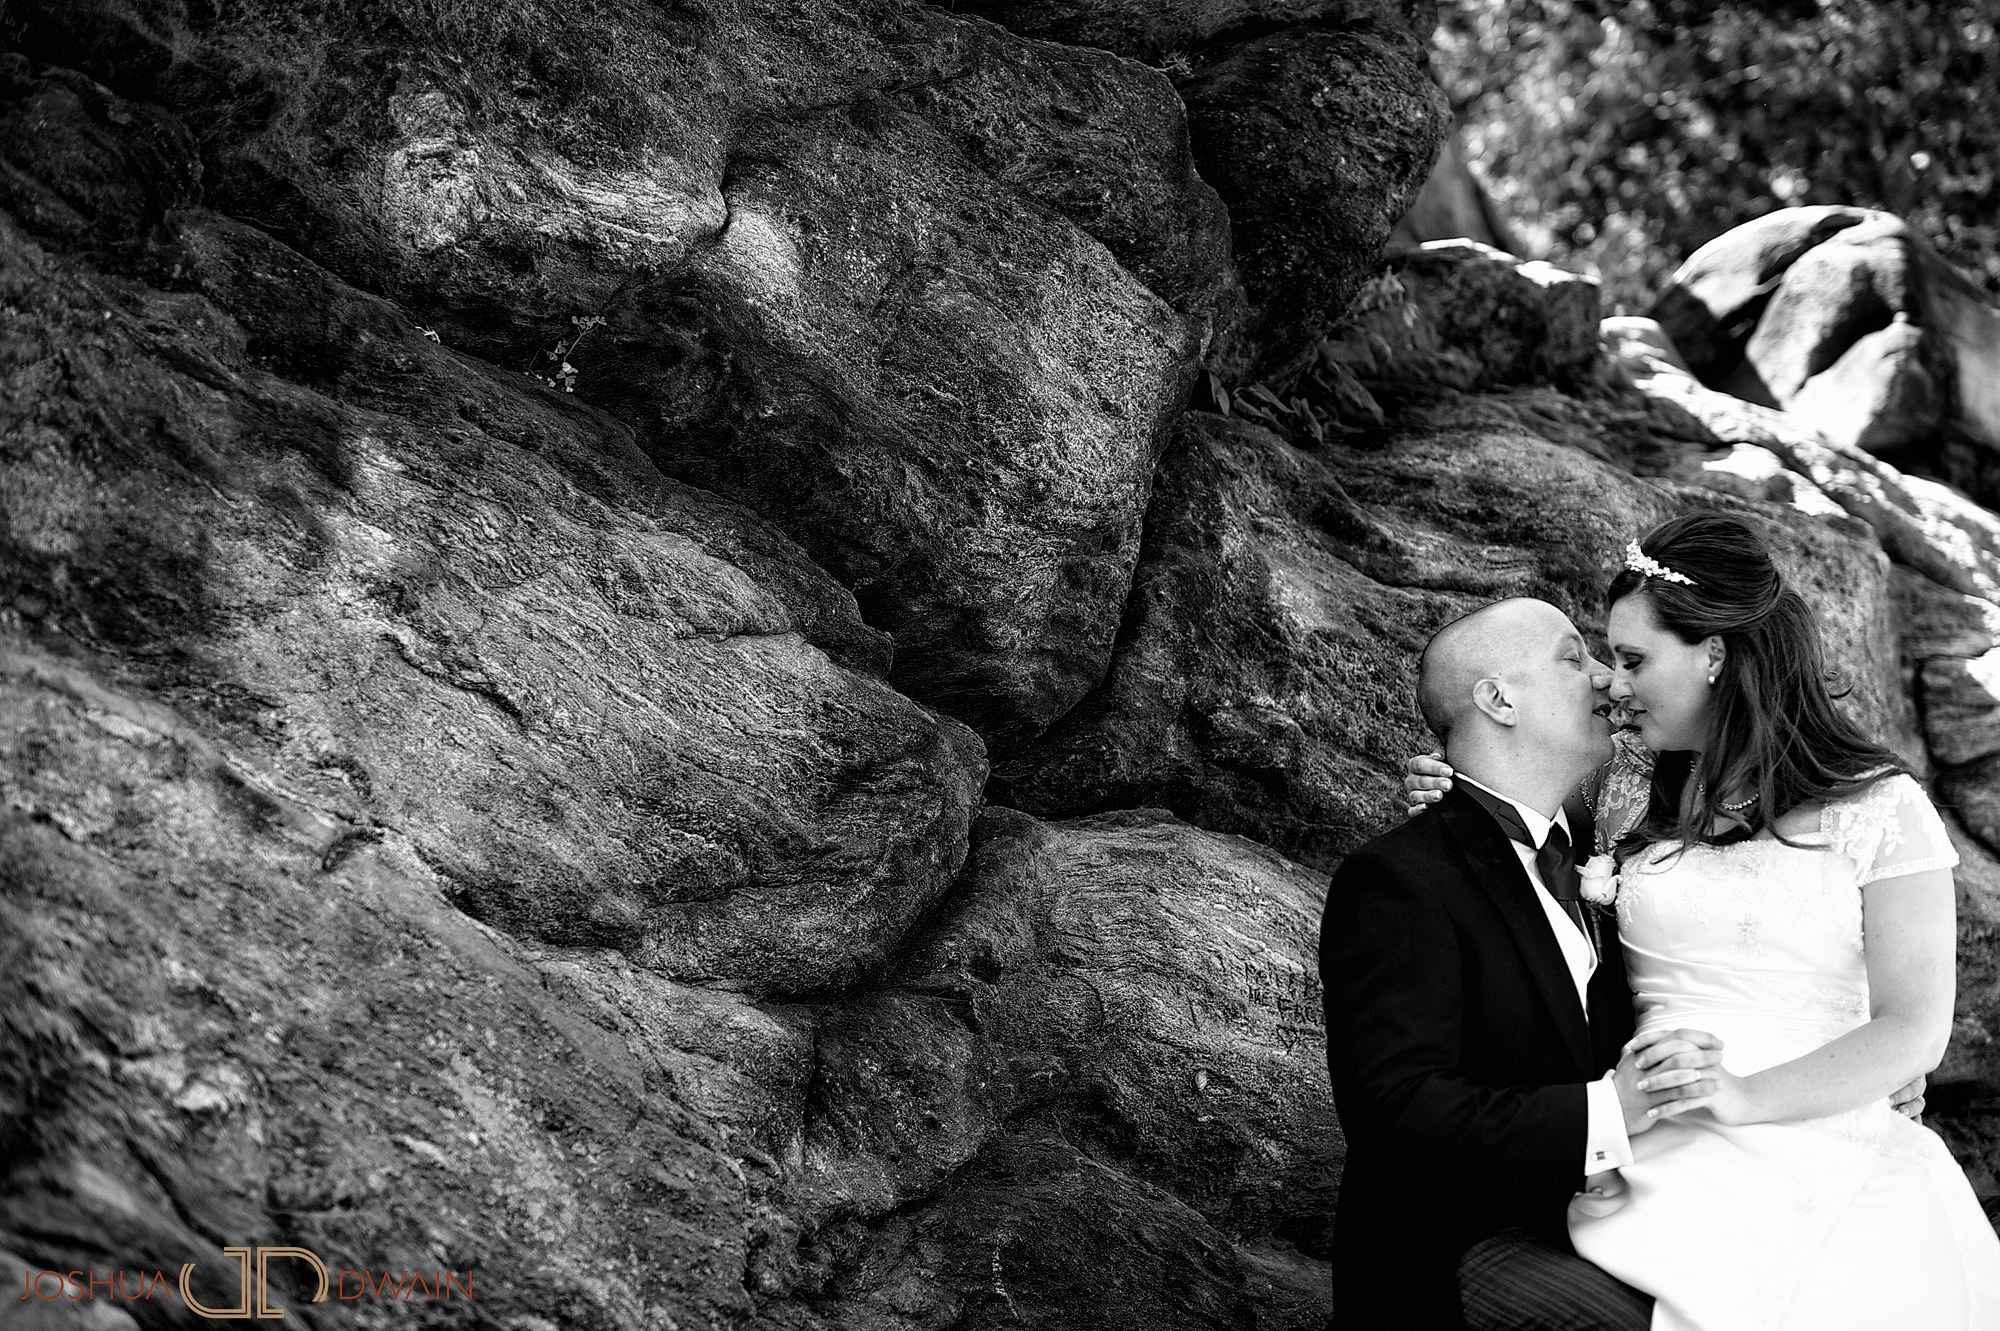 new-york-city-elopement-wedding-photography-011-joshua-dwain